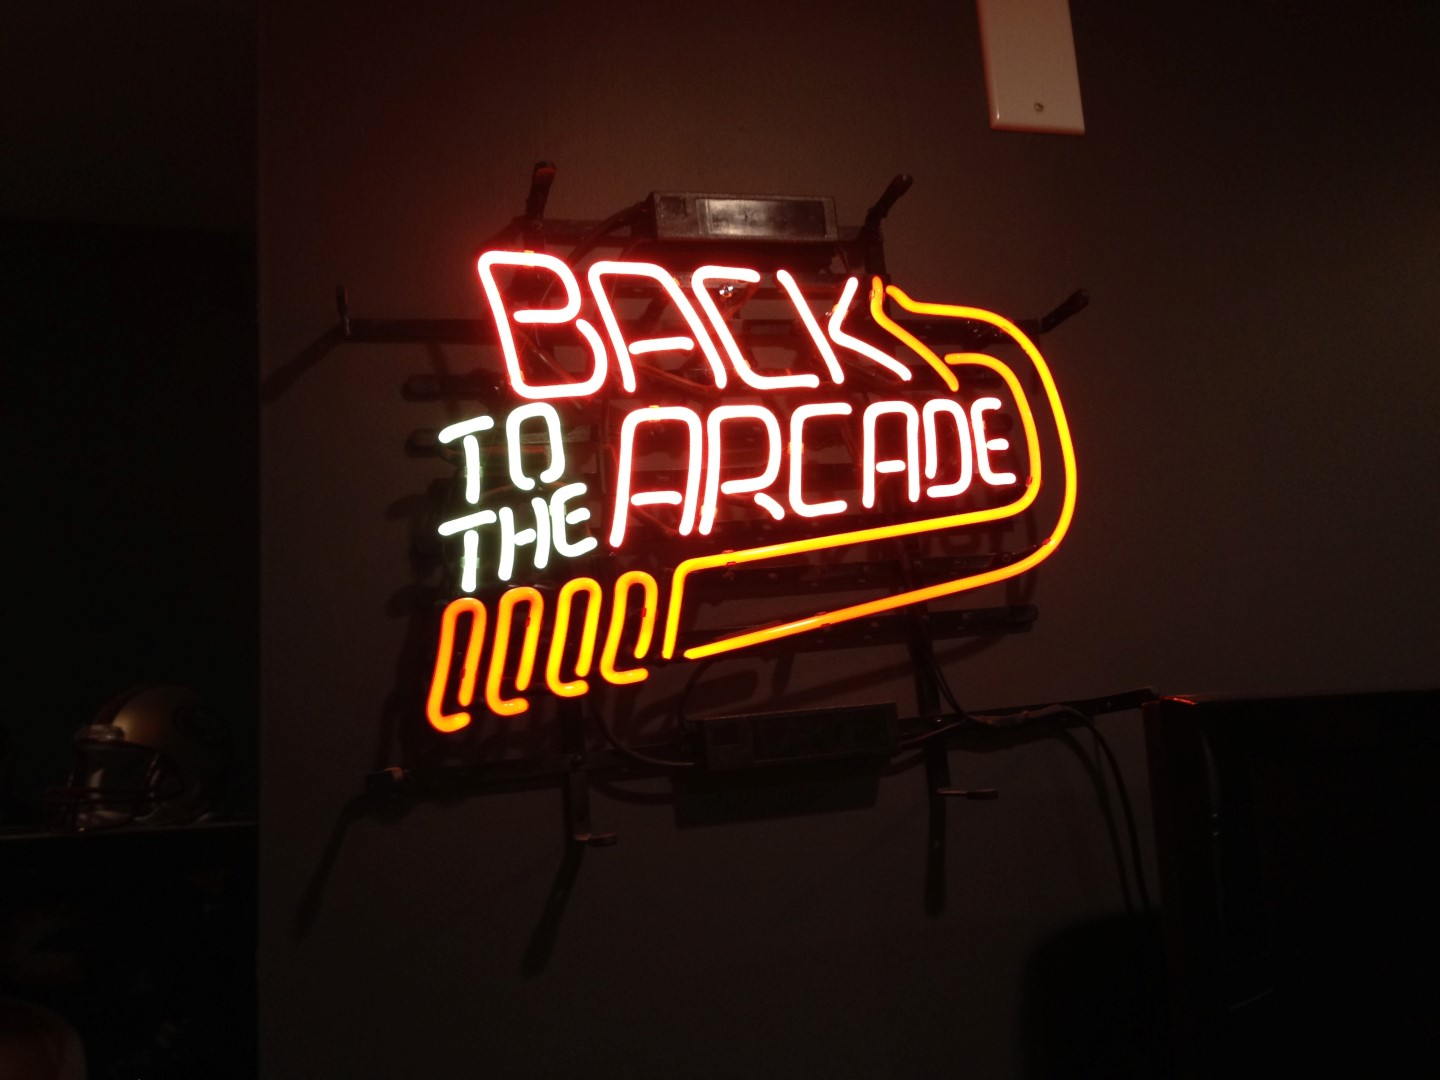 Back to the Arcade neon sign, turned on